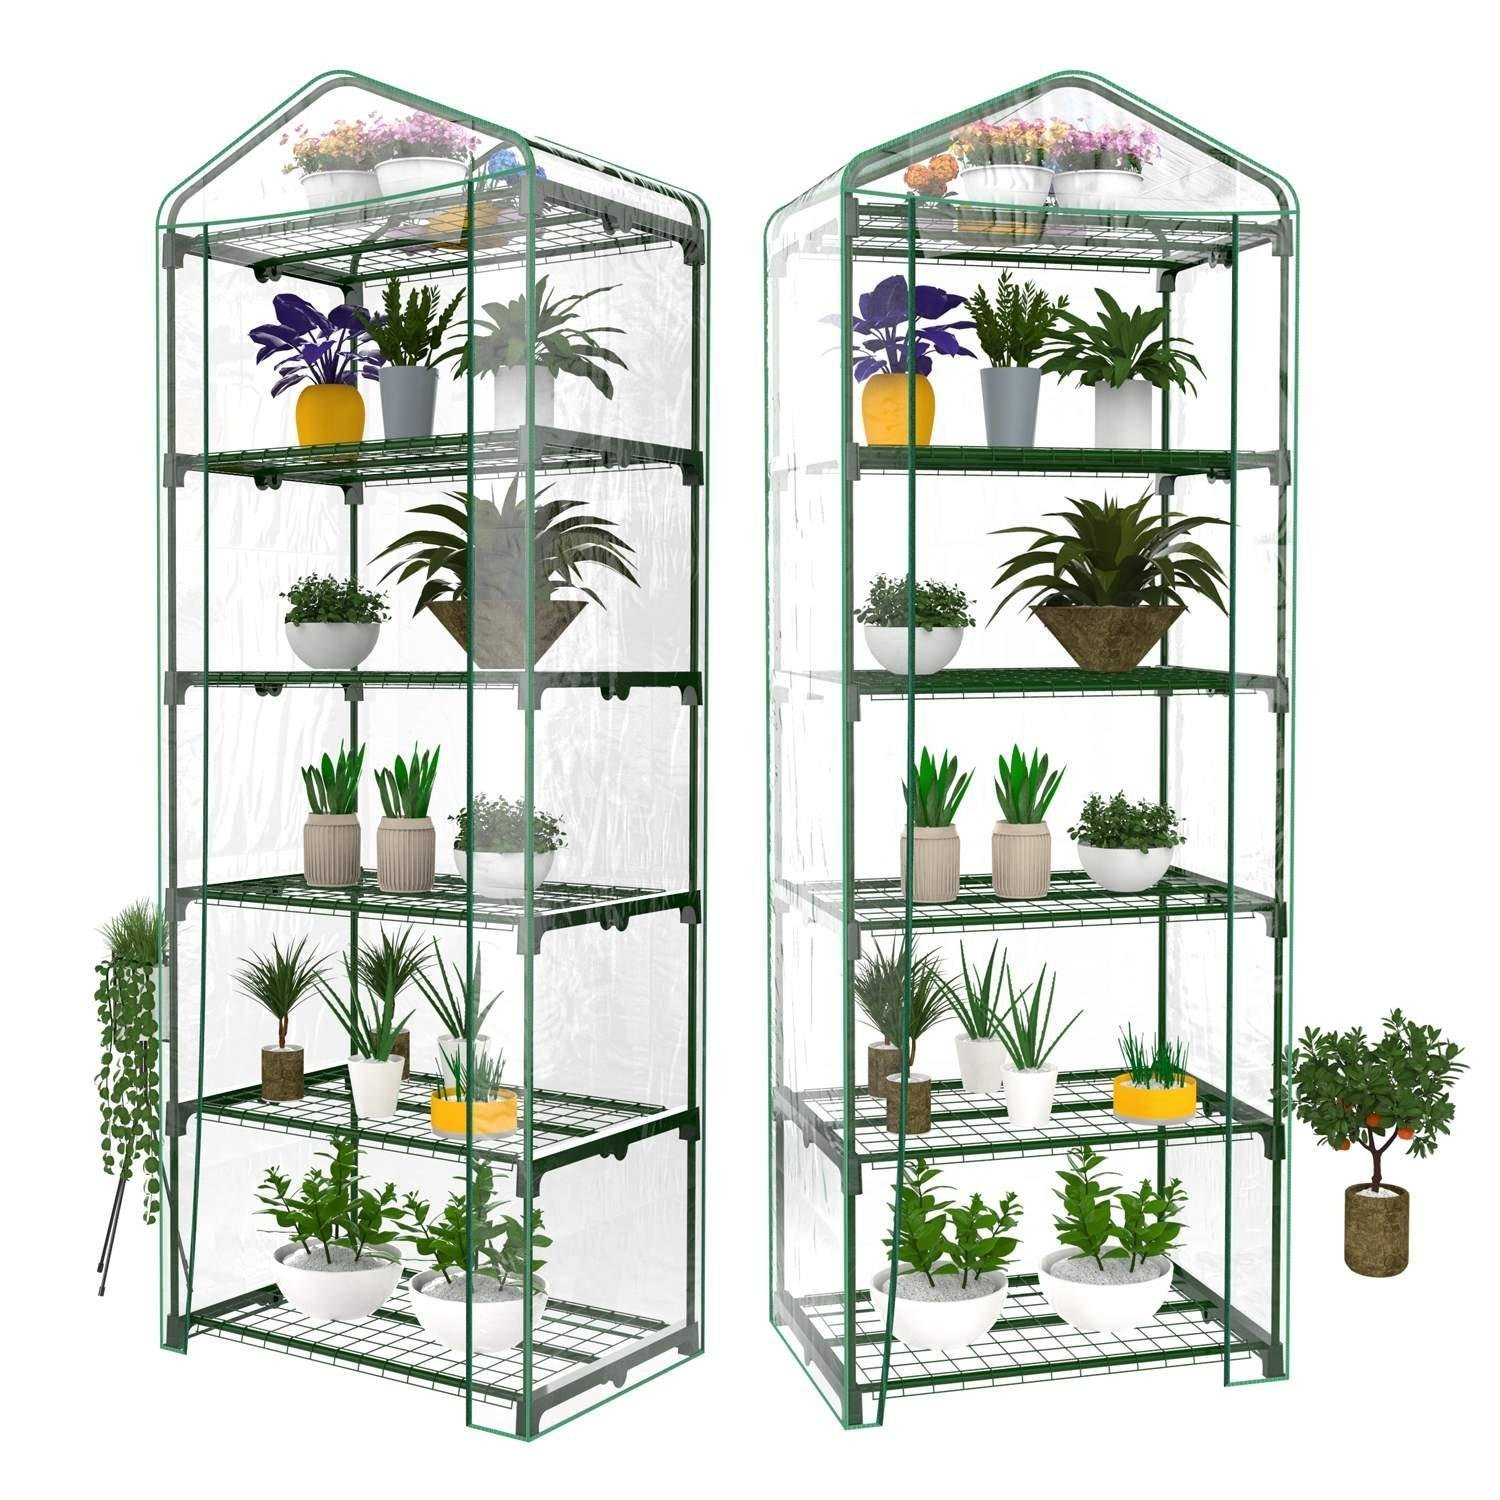 Rapesee 5-Tier Heavy Duty Greenhouse Reinforced Structures Replacement with PVC Cover, Mini Portable Garden Plants Growing House Greenhouse for Outdoors & Indoors